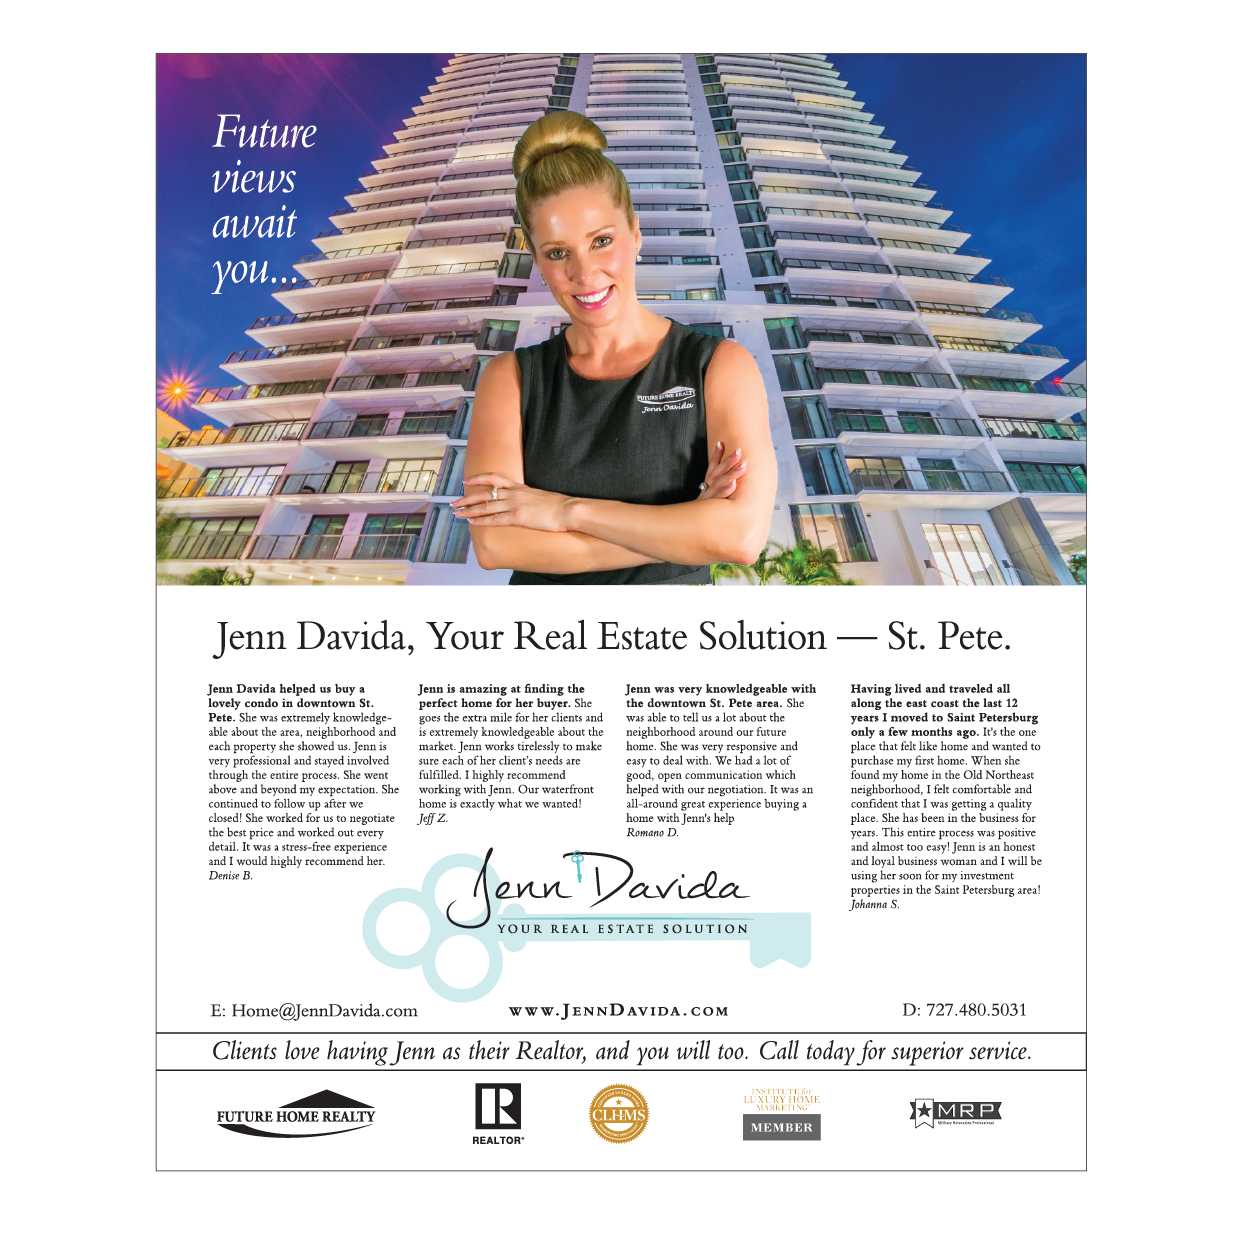 Real Estate Agent Magazine Page (creative with branding)